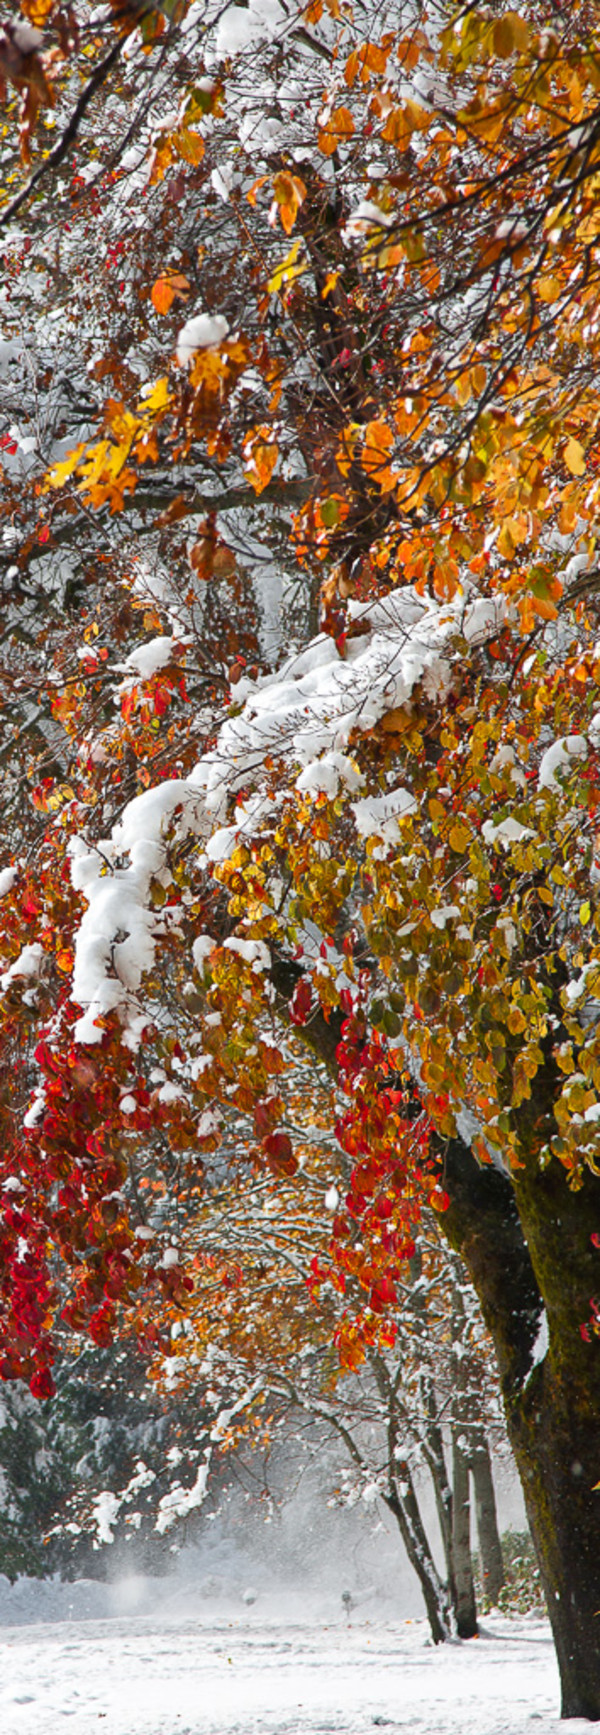 Snow on Autumn Trees by E Wand